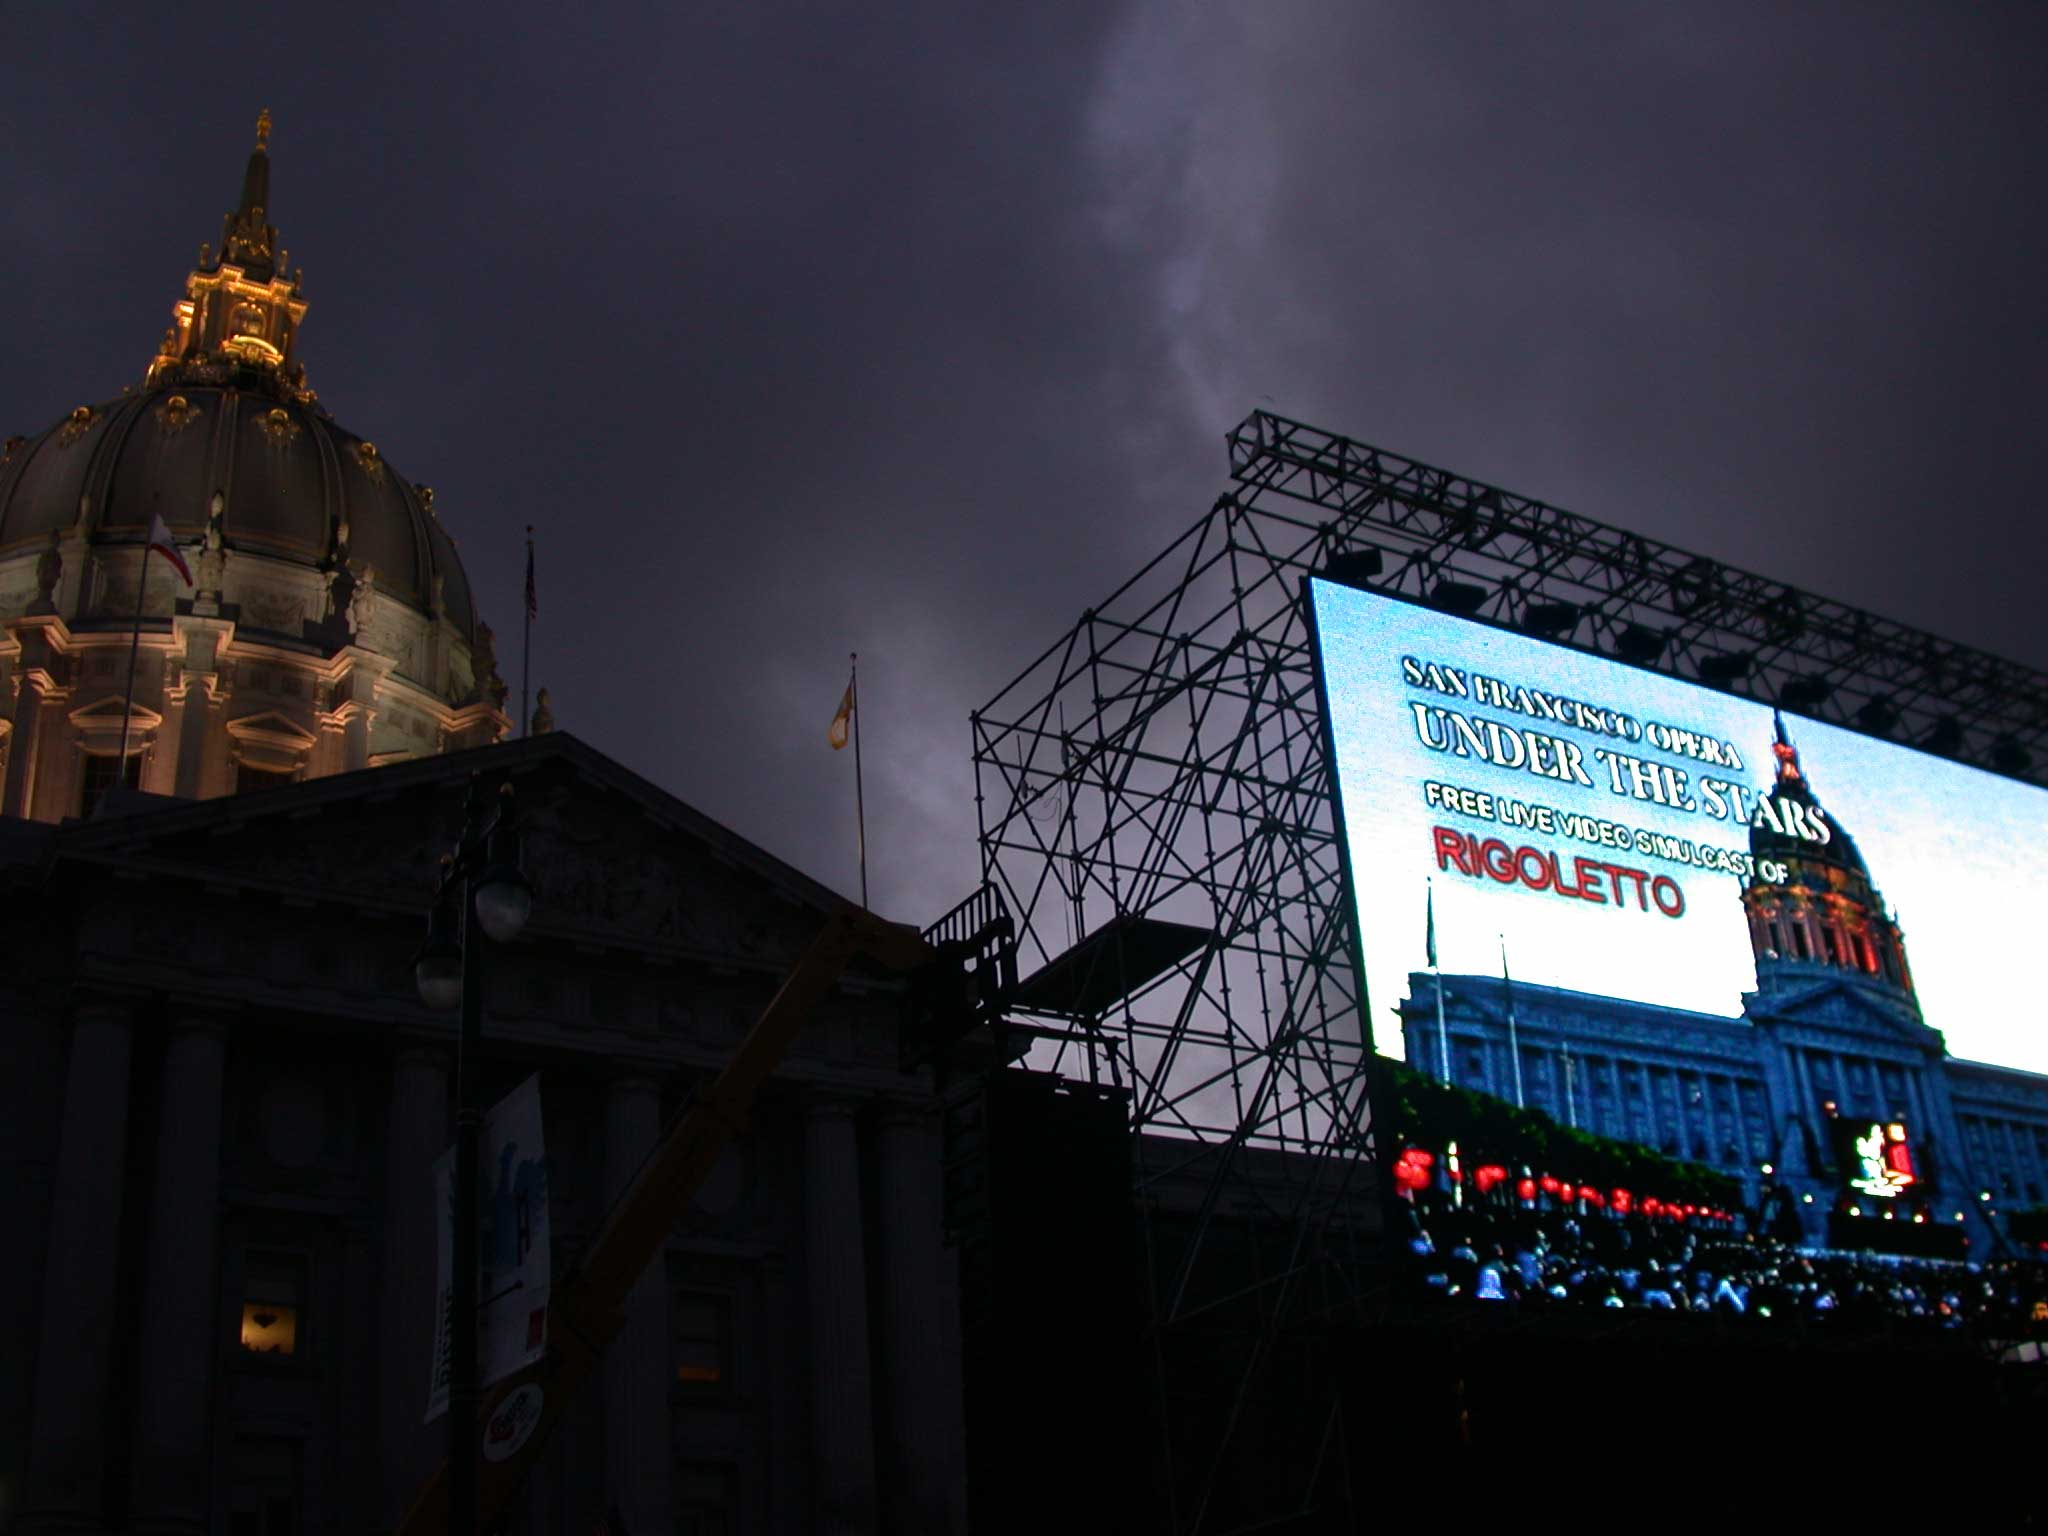 Live Simulcast of the San Francisco Opera Performing Rigoletto Outside City Hall